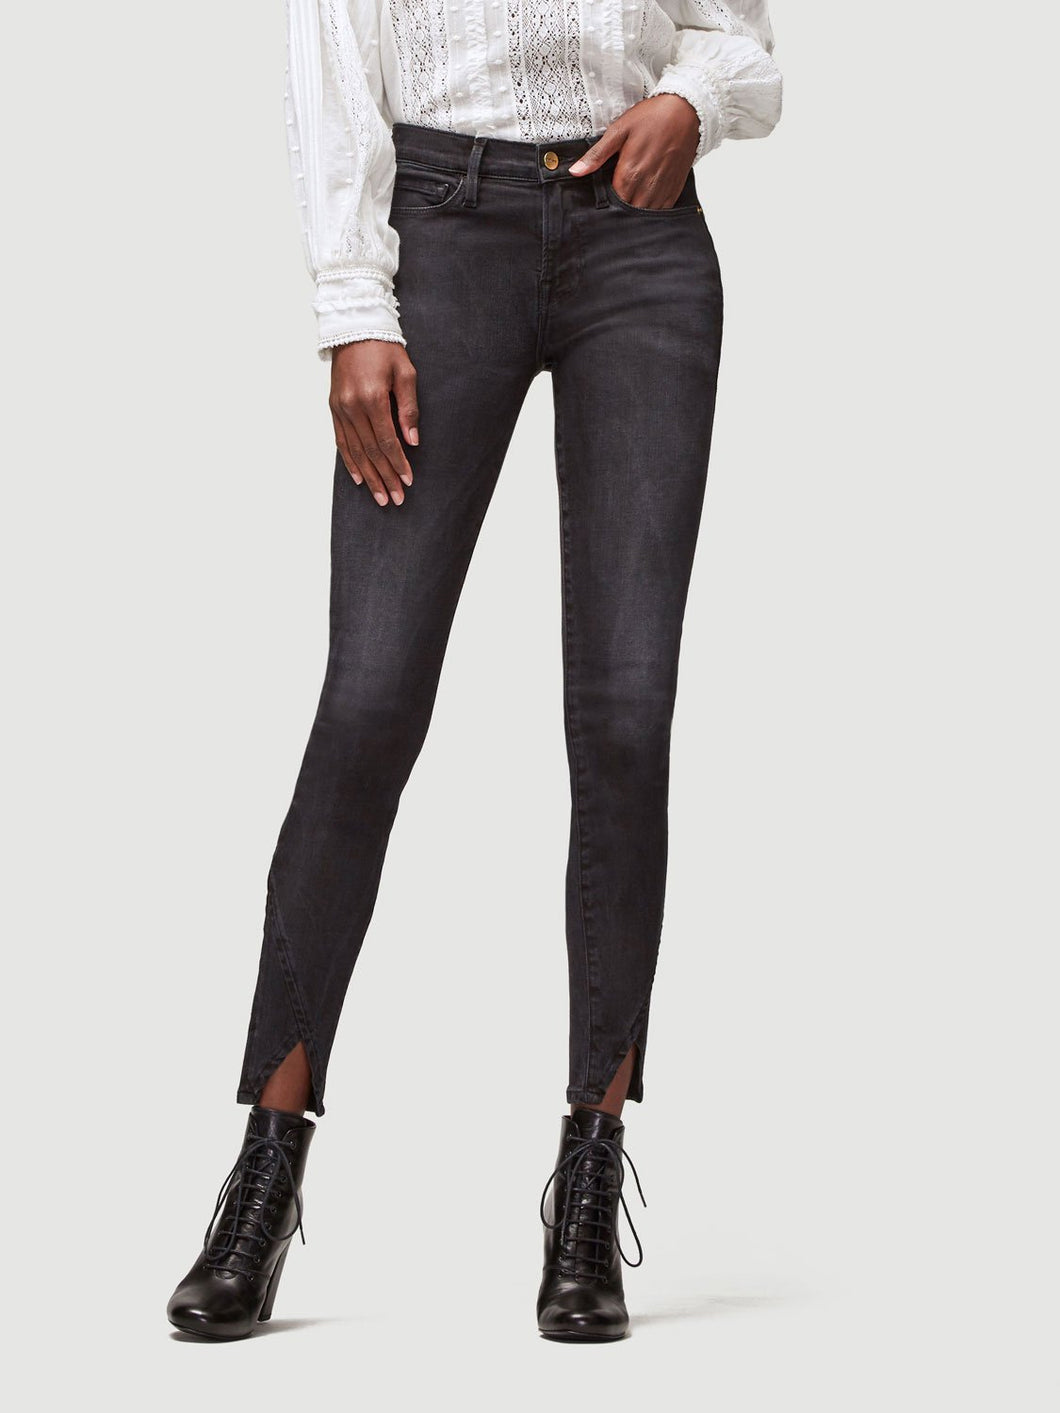 Asymmetrical Skinny Tri Jeans - Wheatley